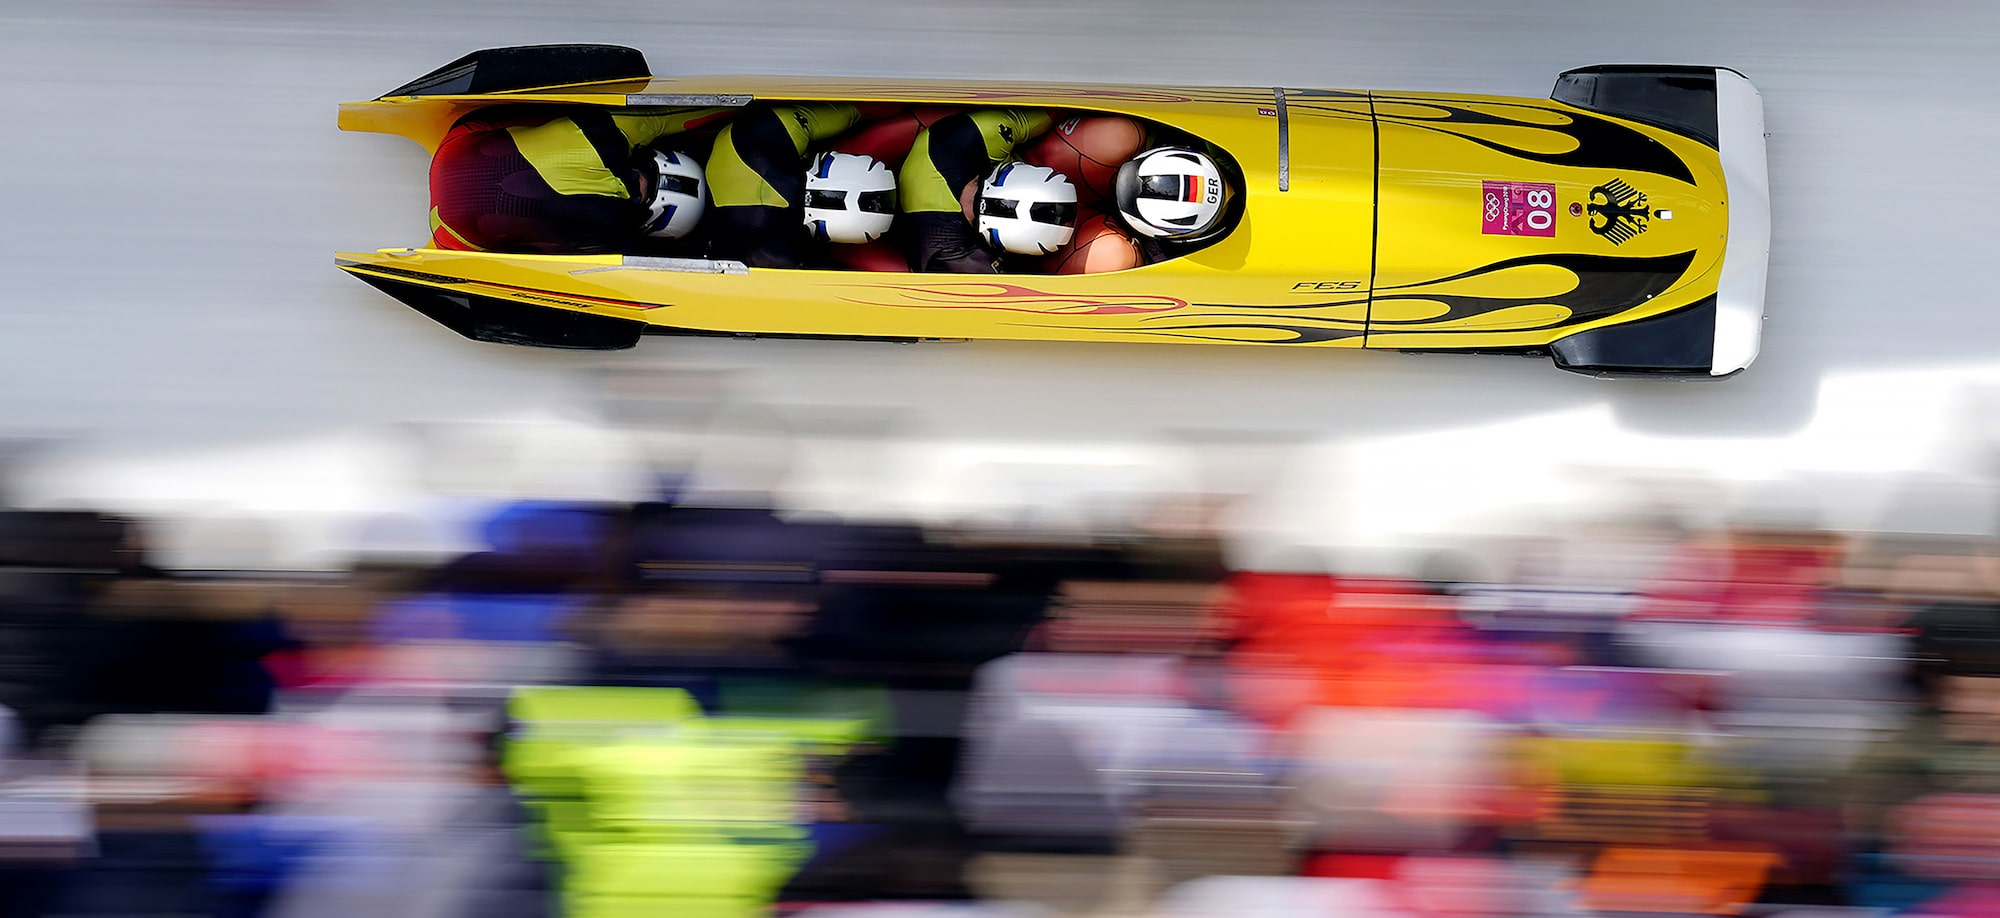 bob martin sony alpha 9 olympic bobsleigh team travelling at high speed pyeongchang olympics